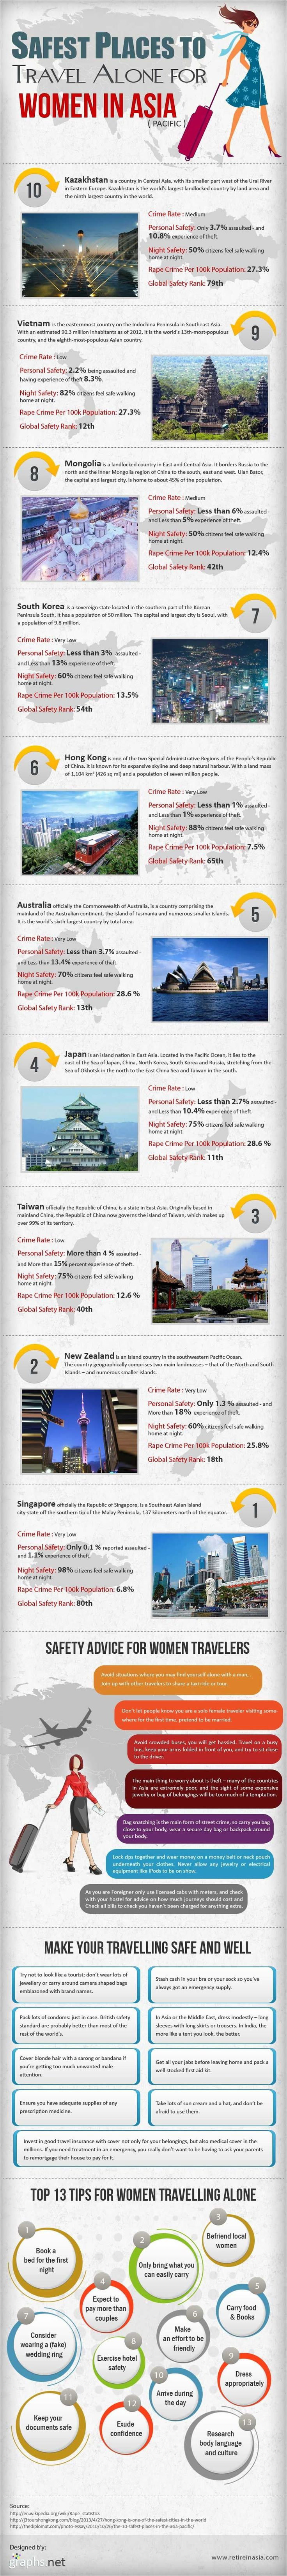 #INFOgraphic > Asia Travel Safety for Women: Japan and and Vietnam are deemed as the safest Asian countries for a woman travel alone, according to global safety rank records.